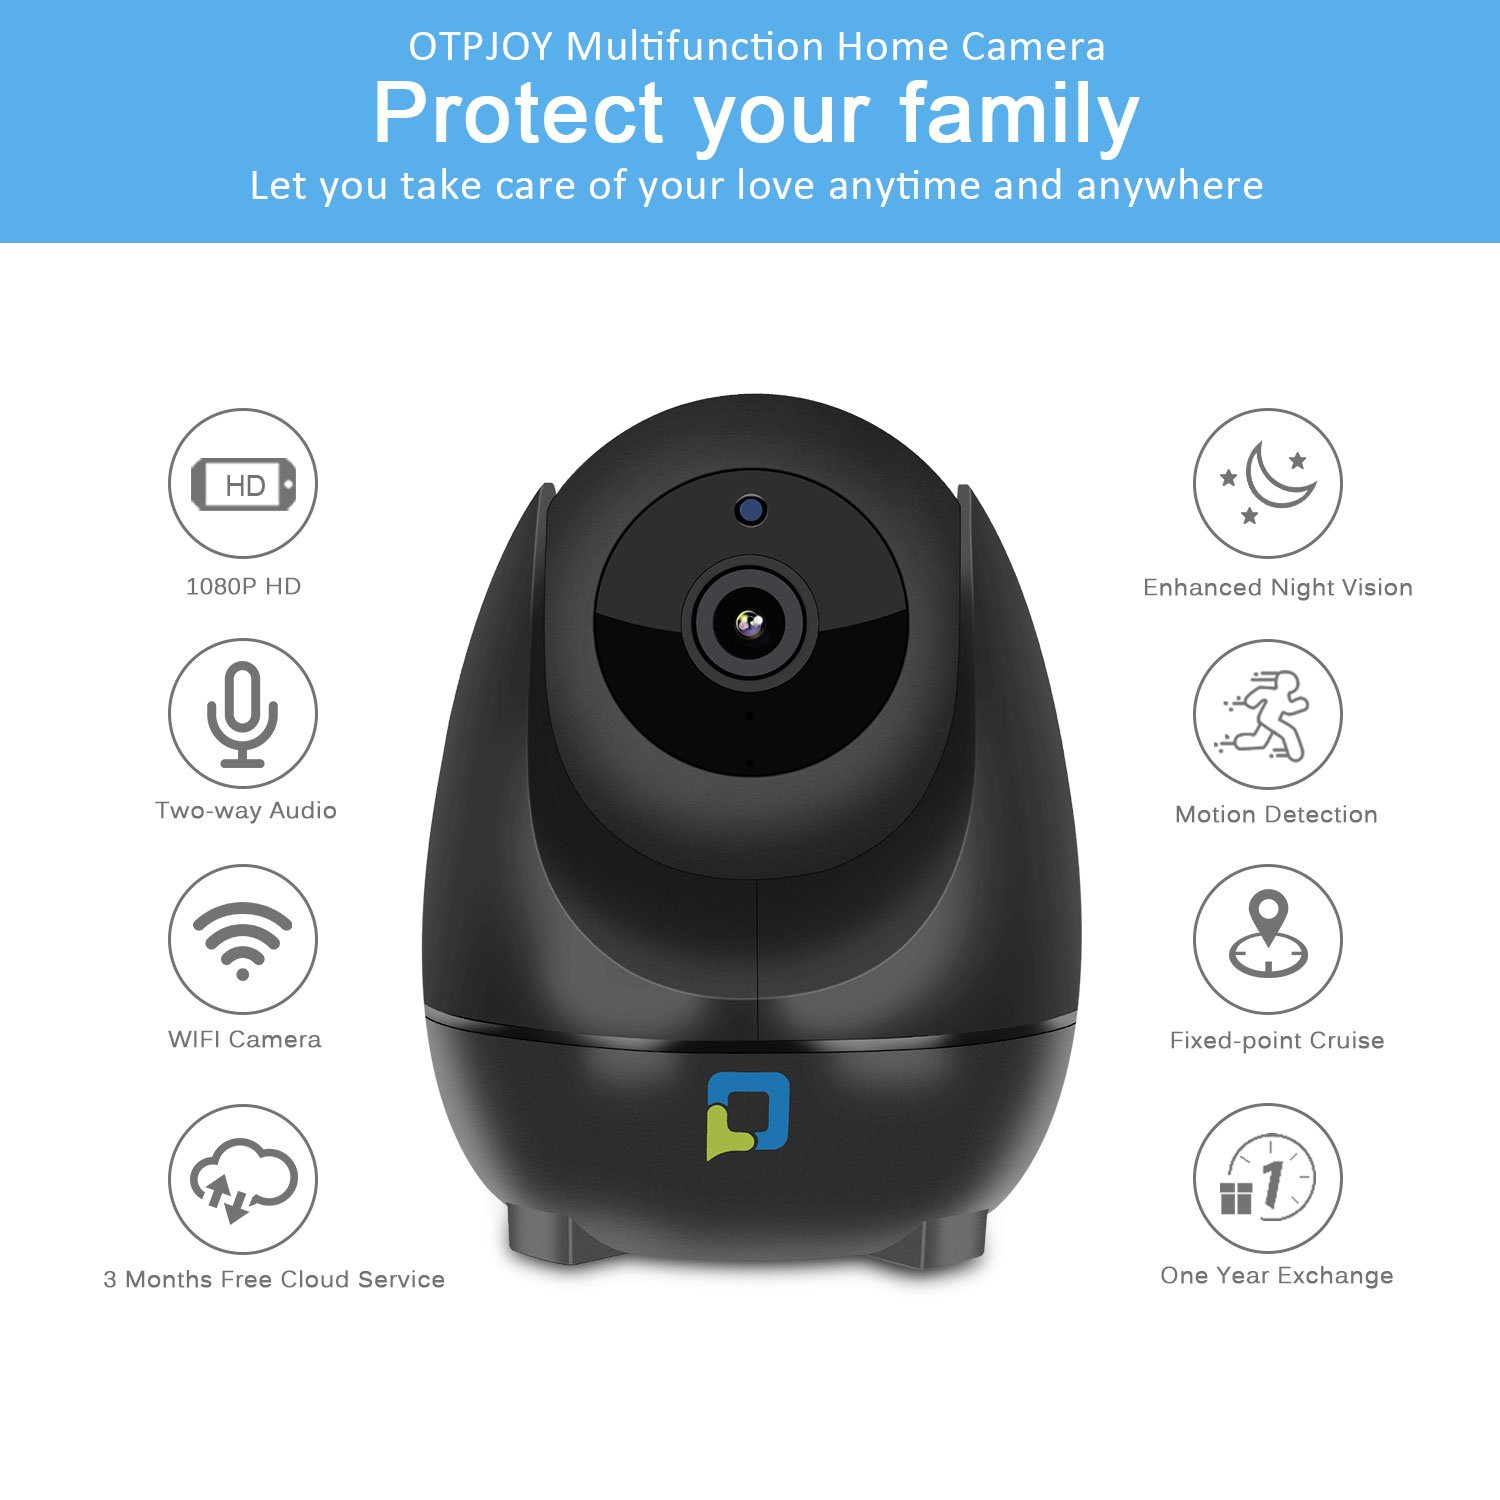 OPTJOY Wireless Security Camera, 1080P WiFi IP Camera, Pan Tilt Zoom Home Indoor Surveillance Camera Auto Night Vision, Motion Tracker, Two-Way Audio, iOS Android APP, Free Cloud Service